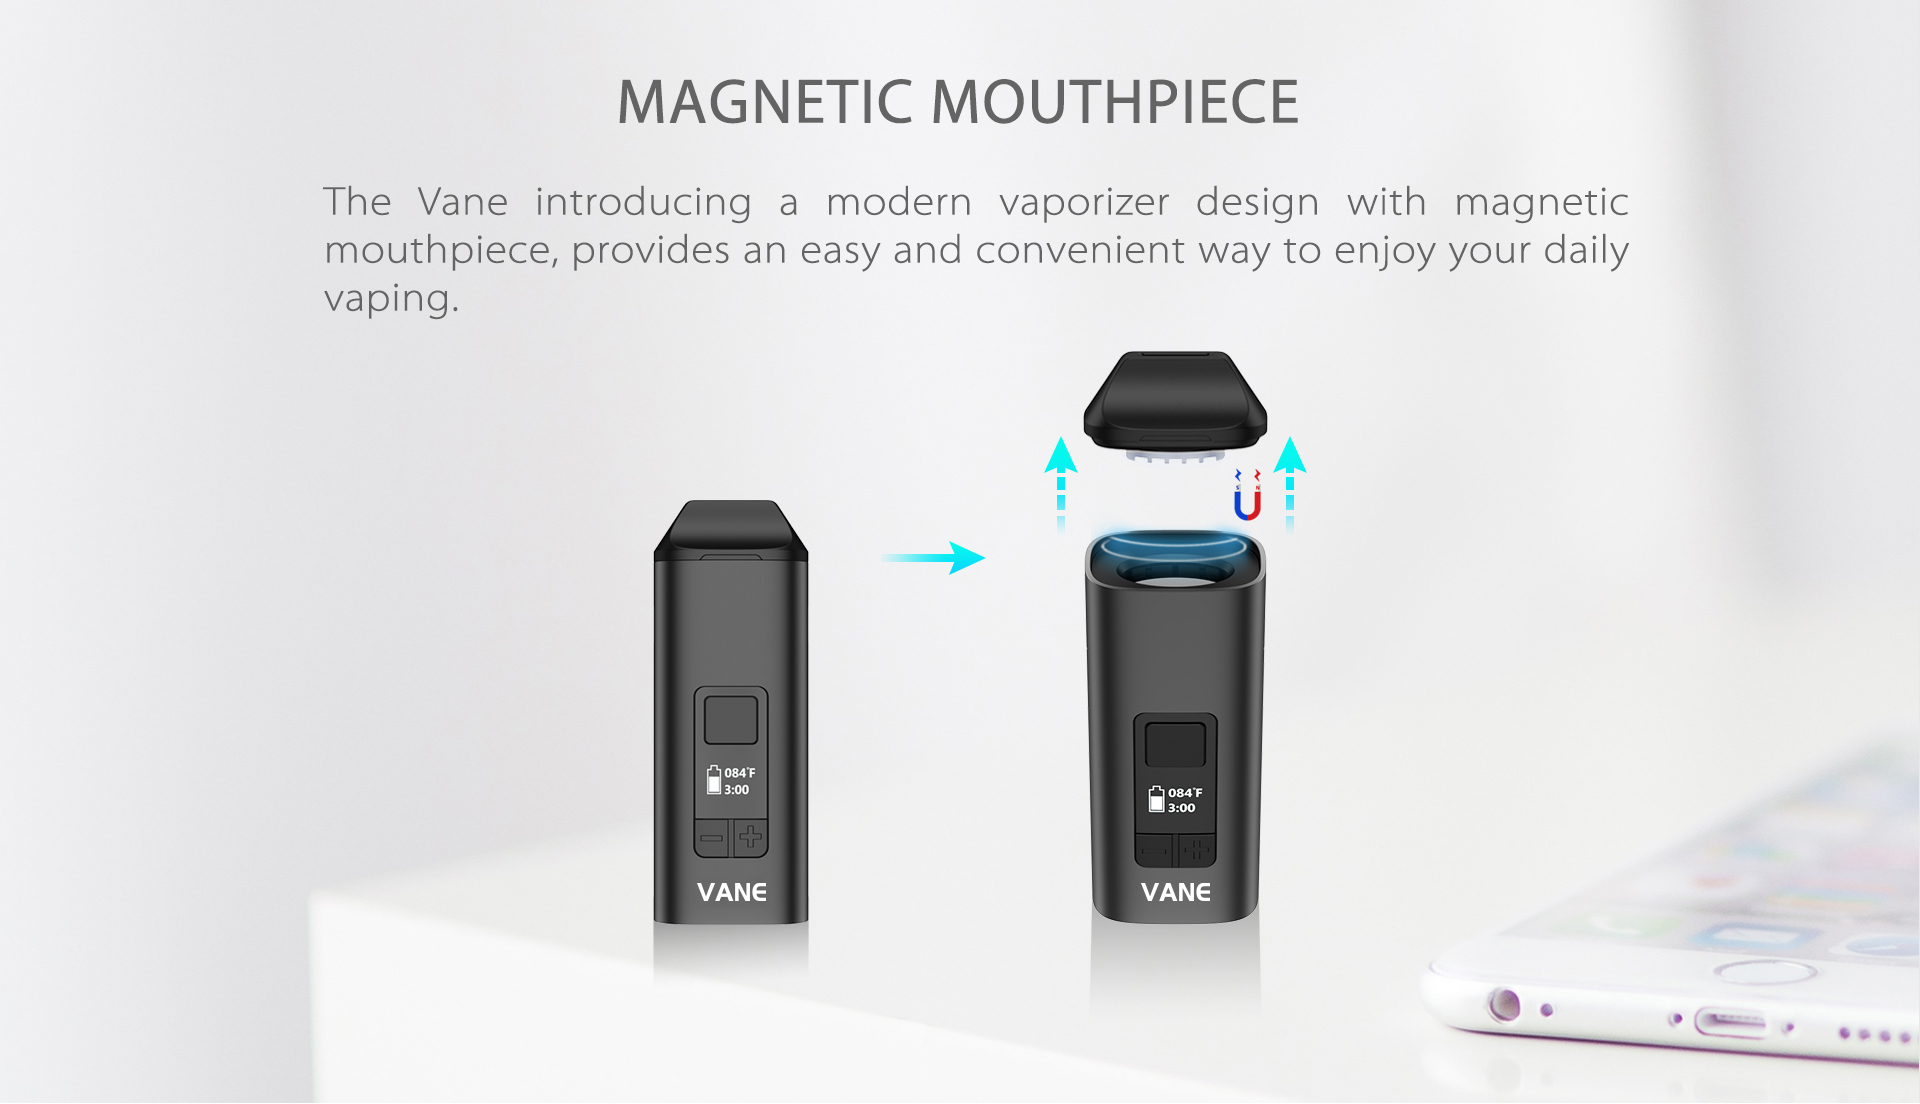 Yocan Vane Dry Vaporizer introducing a modern vaporizer design with magnetic mouthpiece